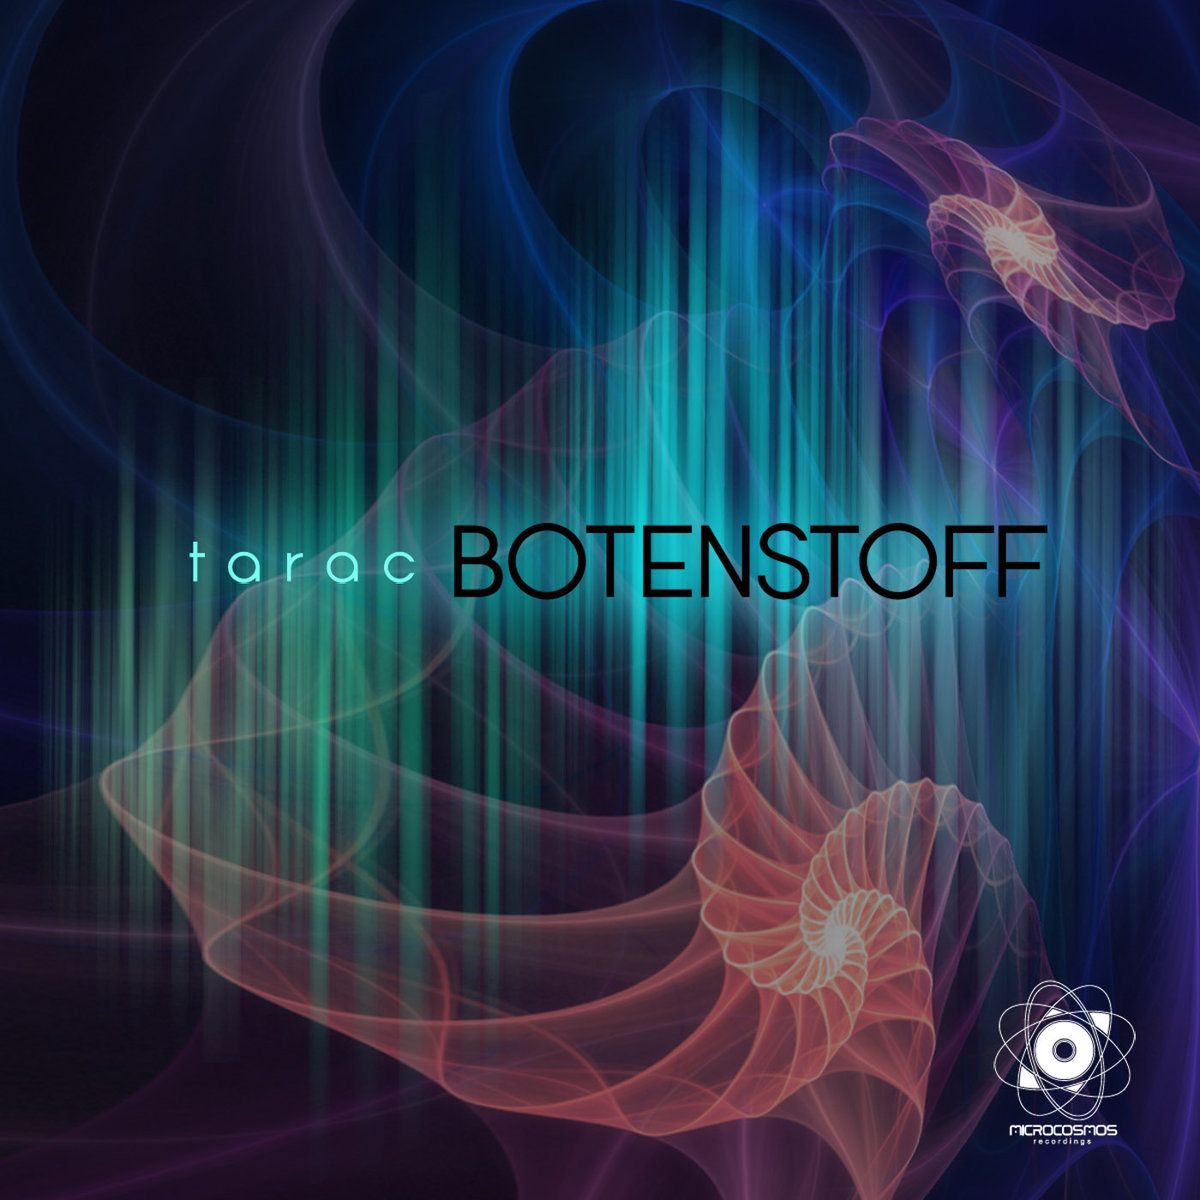 Tarac - Botenstoff (artwork)